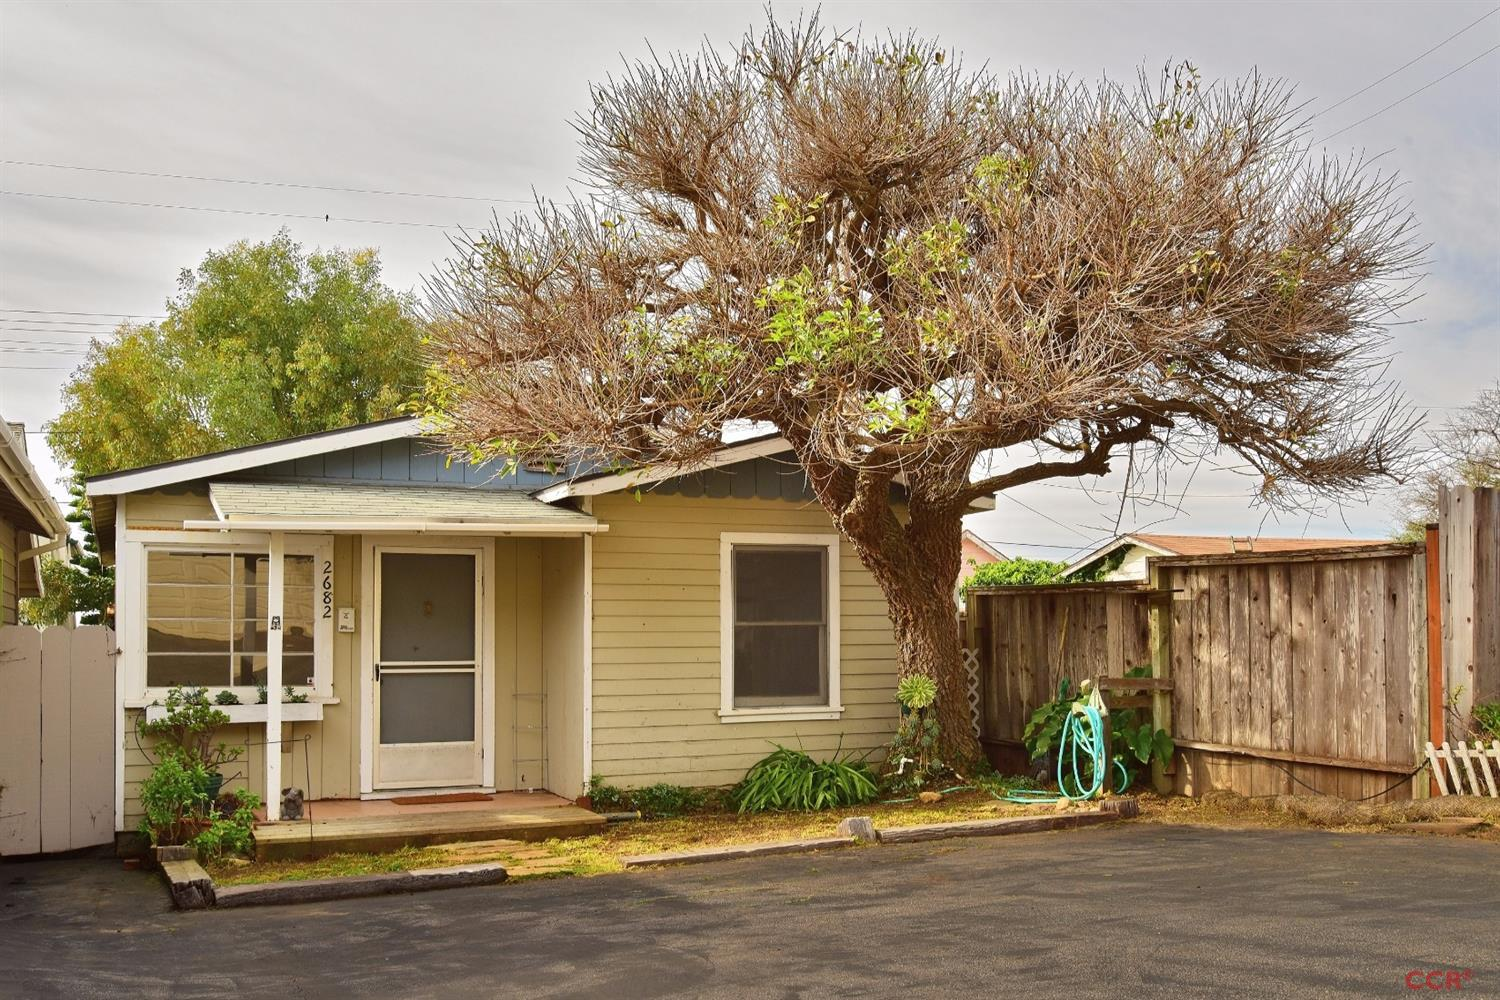 2682 Orville Ave, Cayucos, CA 93430